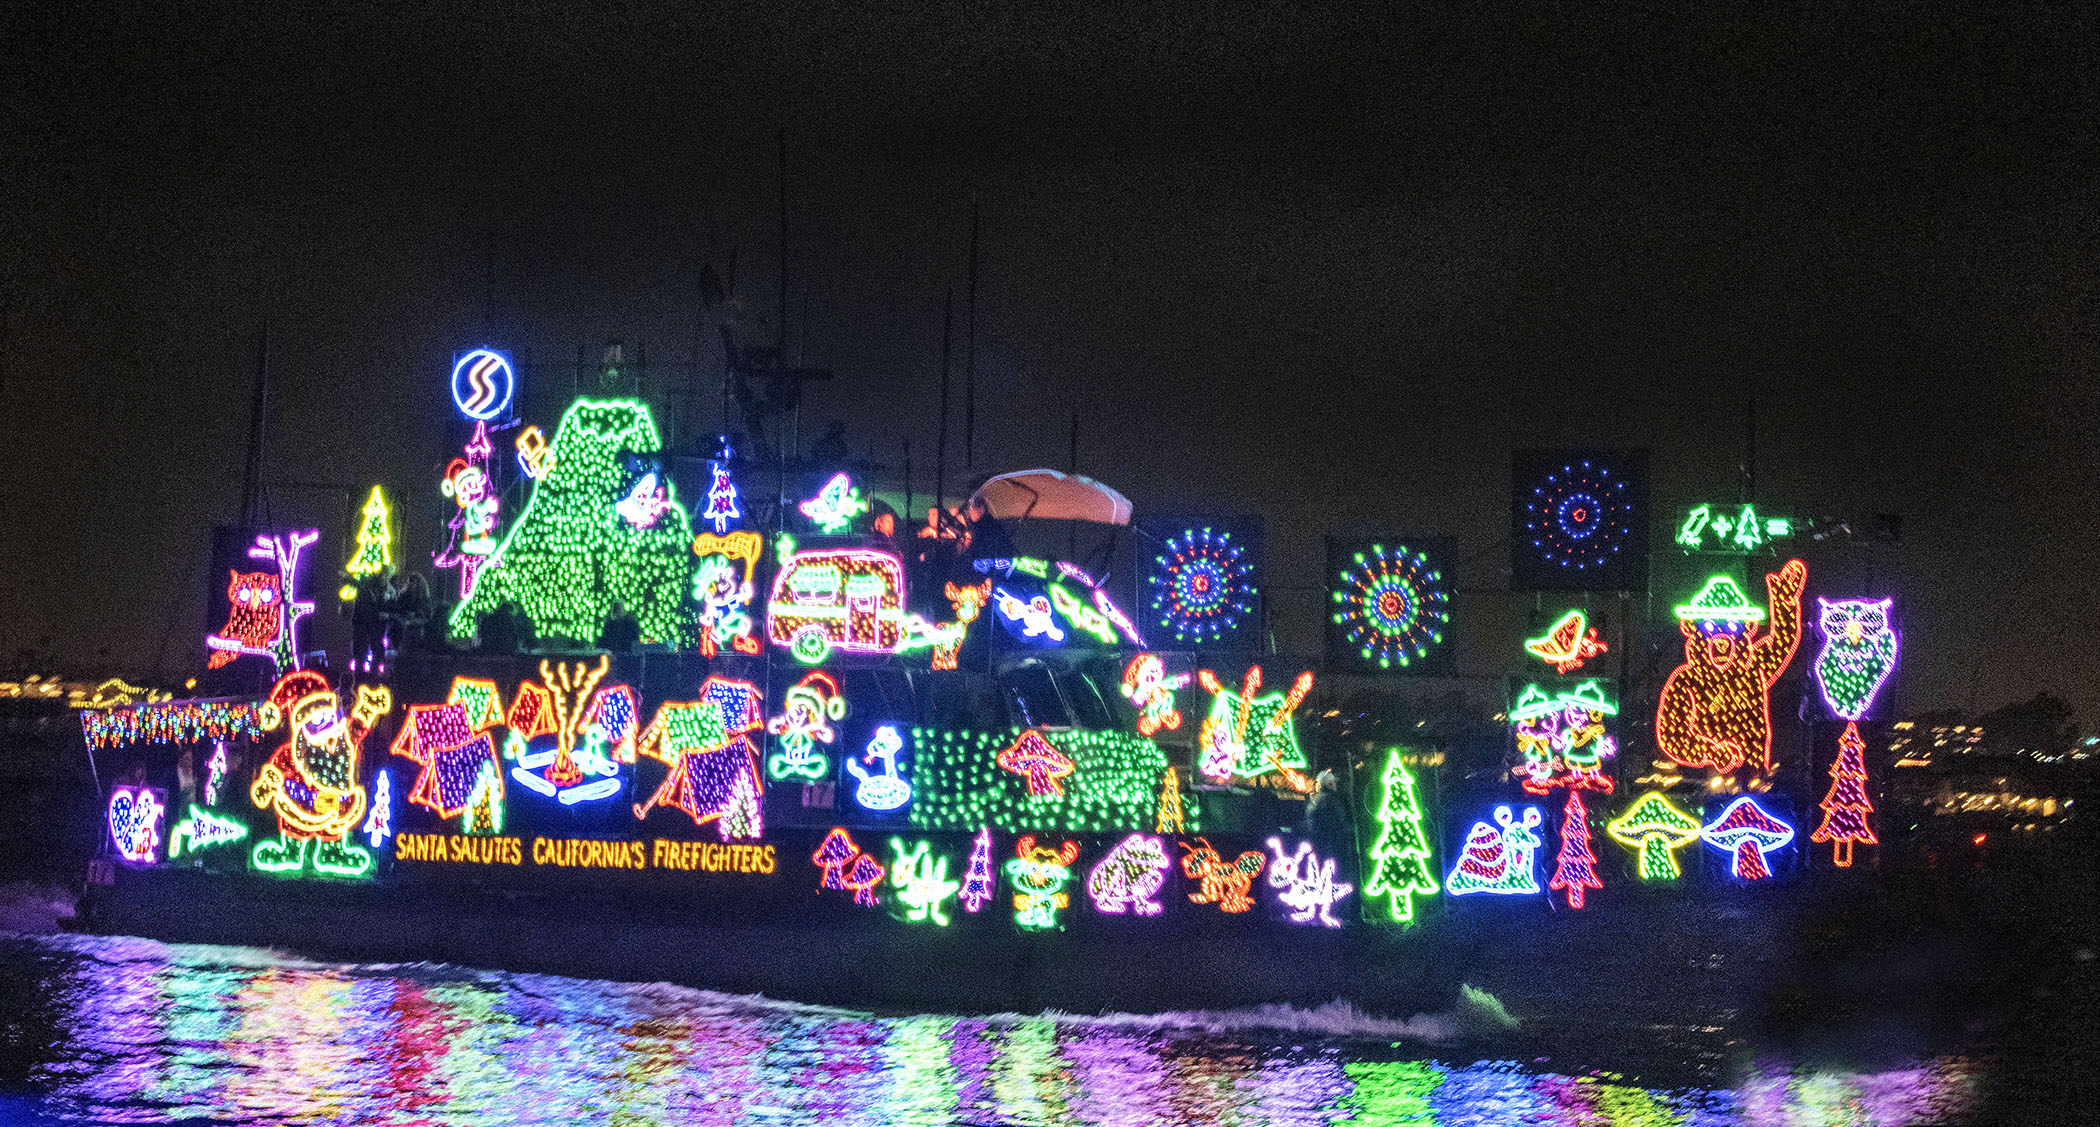 Newport Christmas Parade 2021 Pick The Theme For The 2021 Christmas Boat Parade Newport Beach News